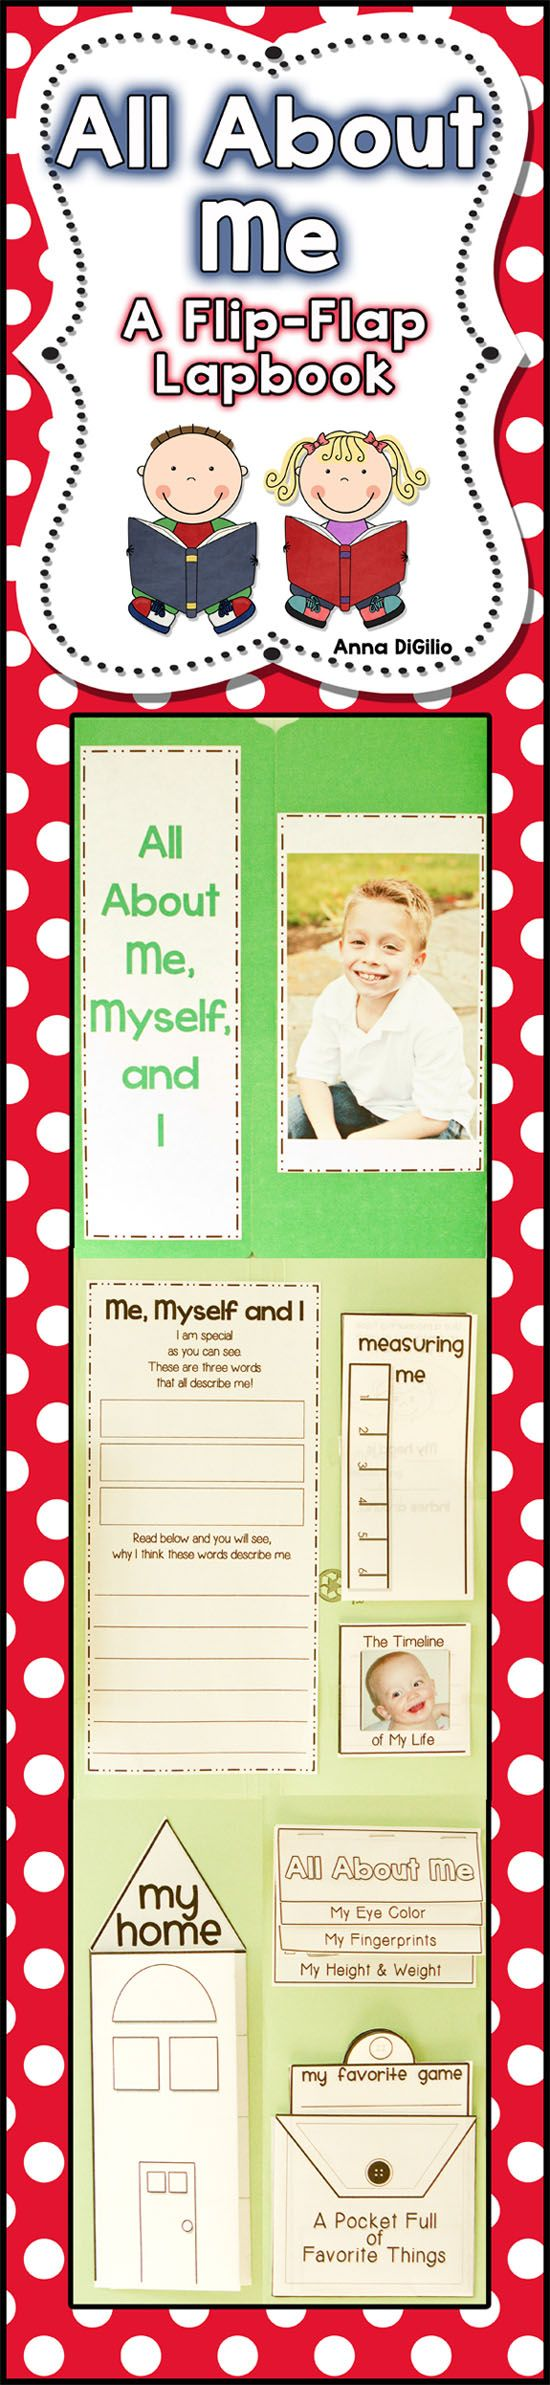 This All About Me Flip-Flap Lapbook is a great BACK TO SCHOOL Activity that the parents will LOVE and will be a wonderful keepsake! This unit incorporates writing and math skills!! $